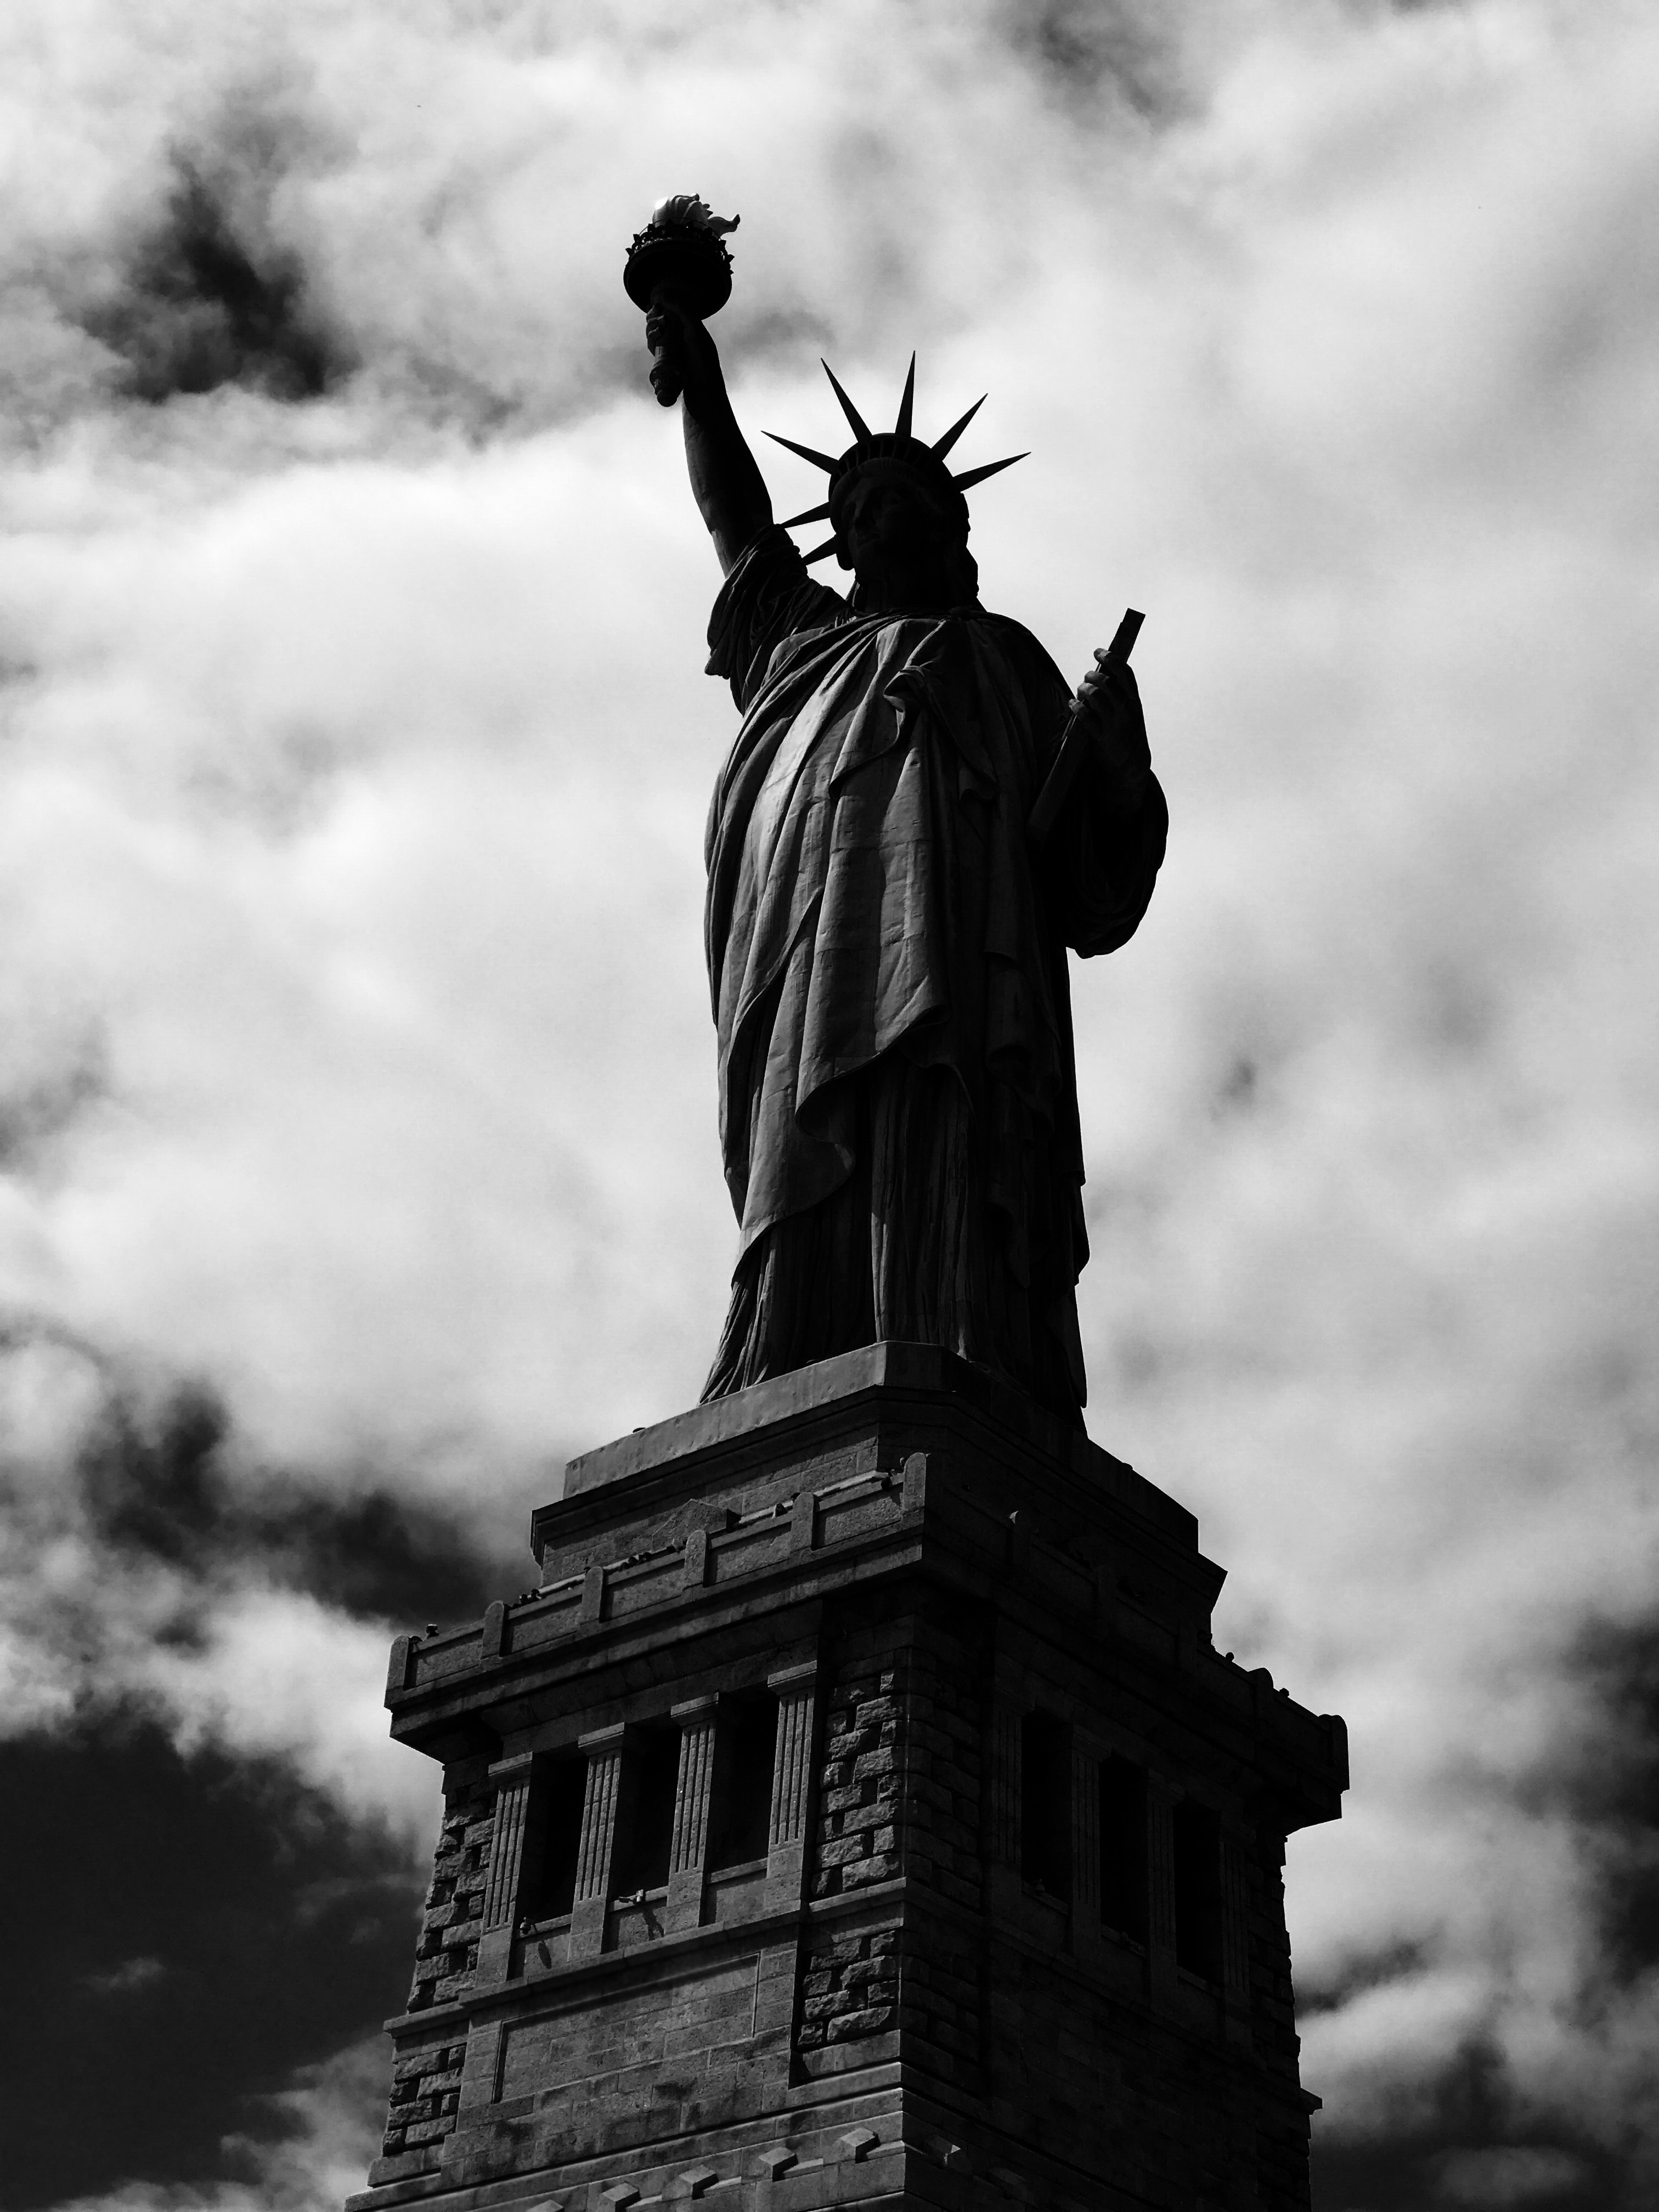 low-angle grayscale photo of Statue of Liberty